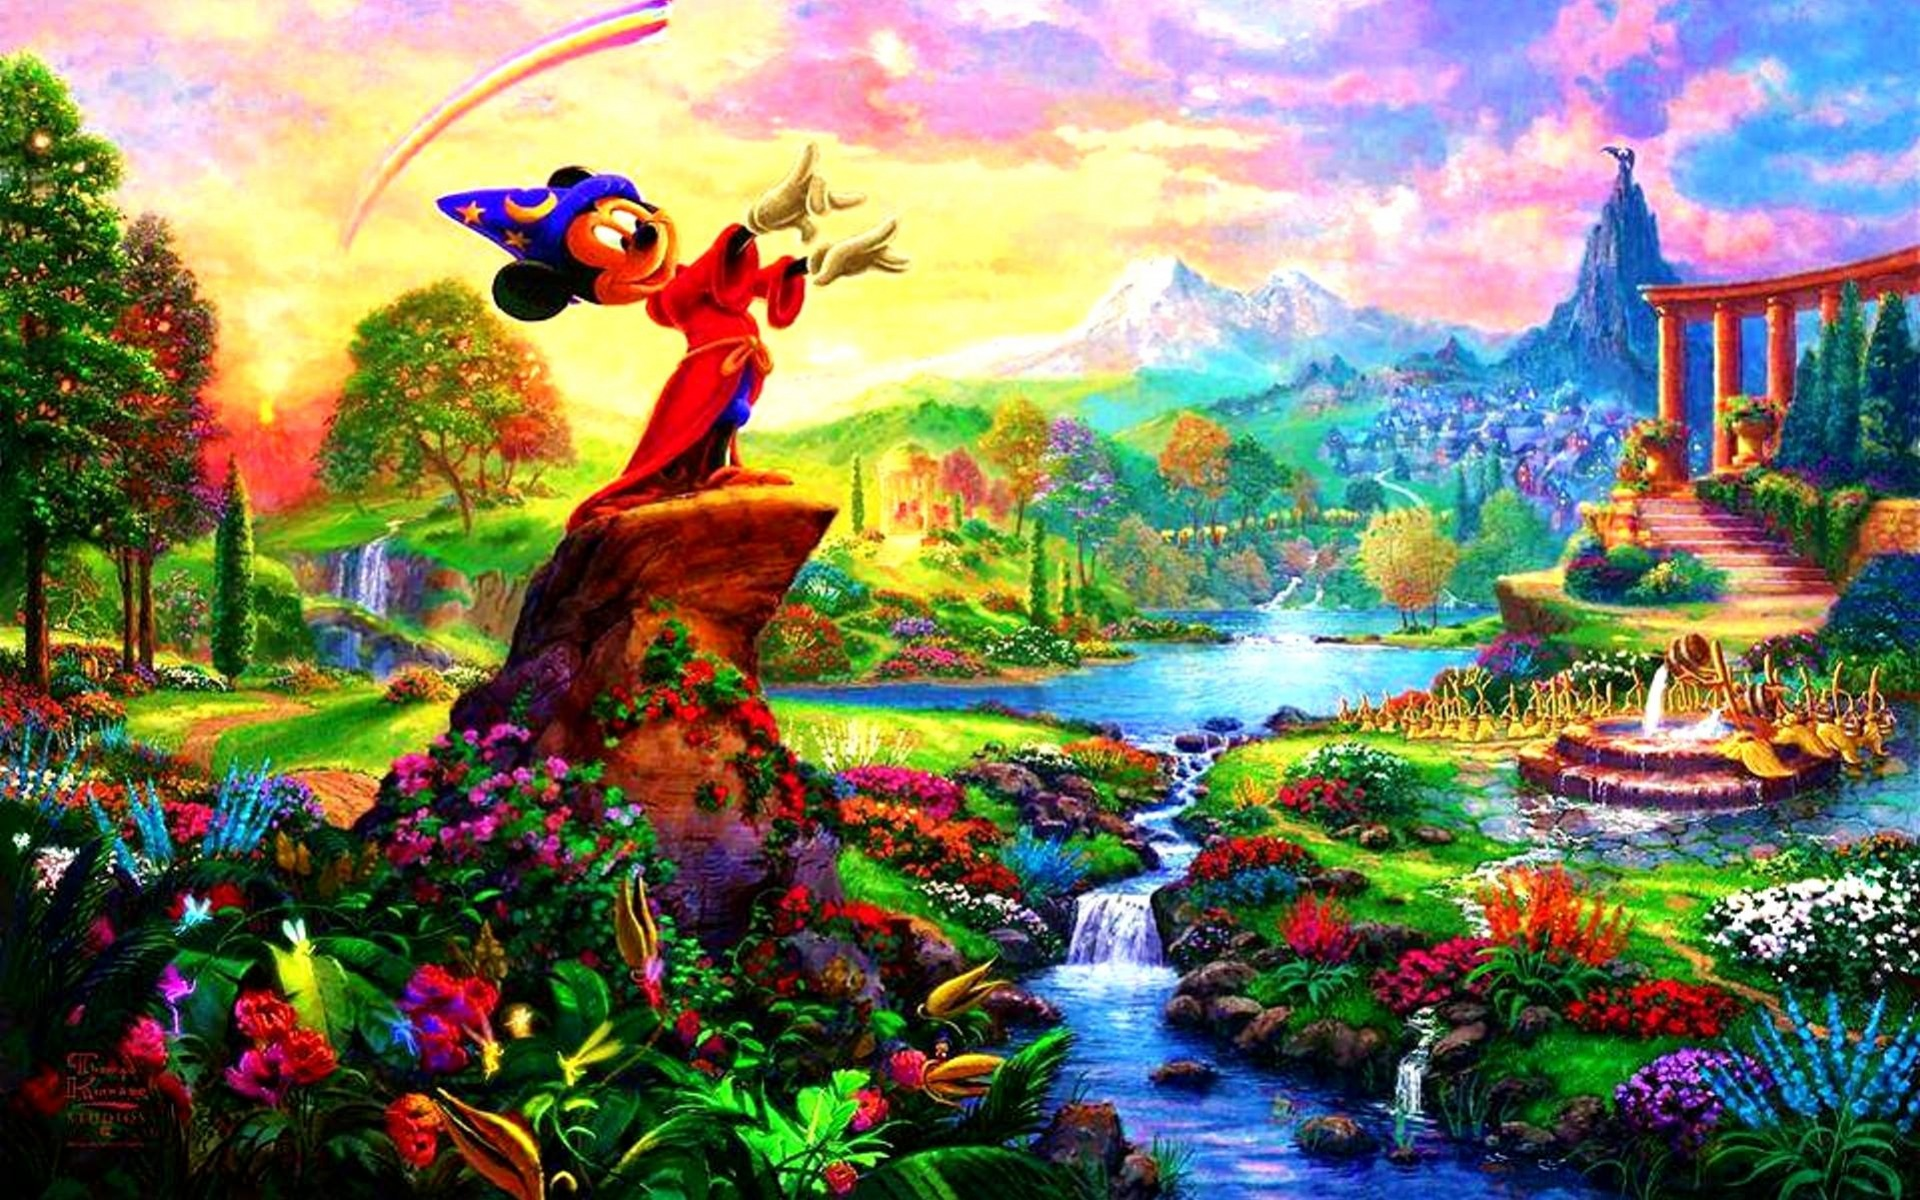 3d Mushroom Garden Wallpaper Mickey Mouse Fantasia Magical Wallpapers Mickey Mouse